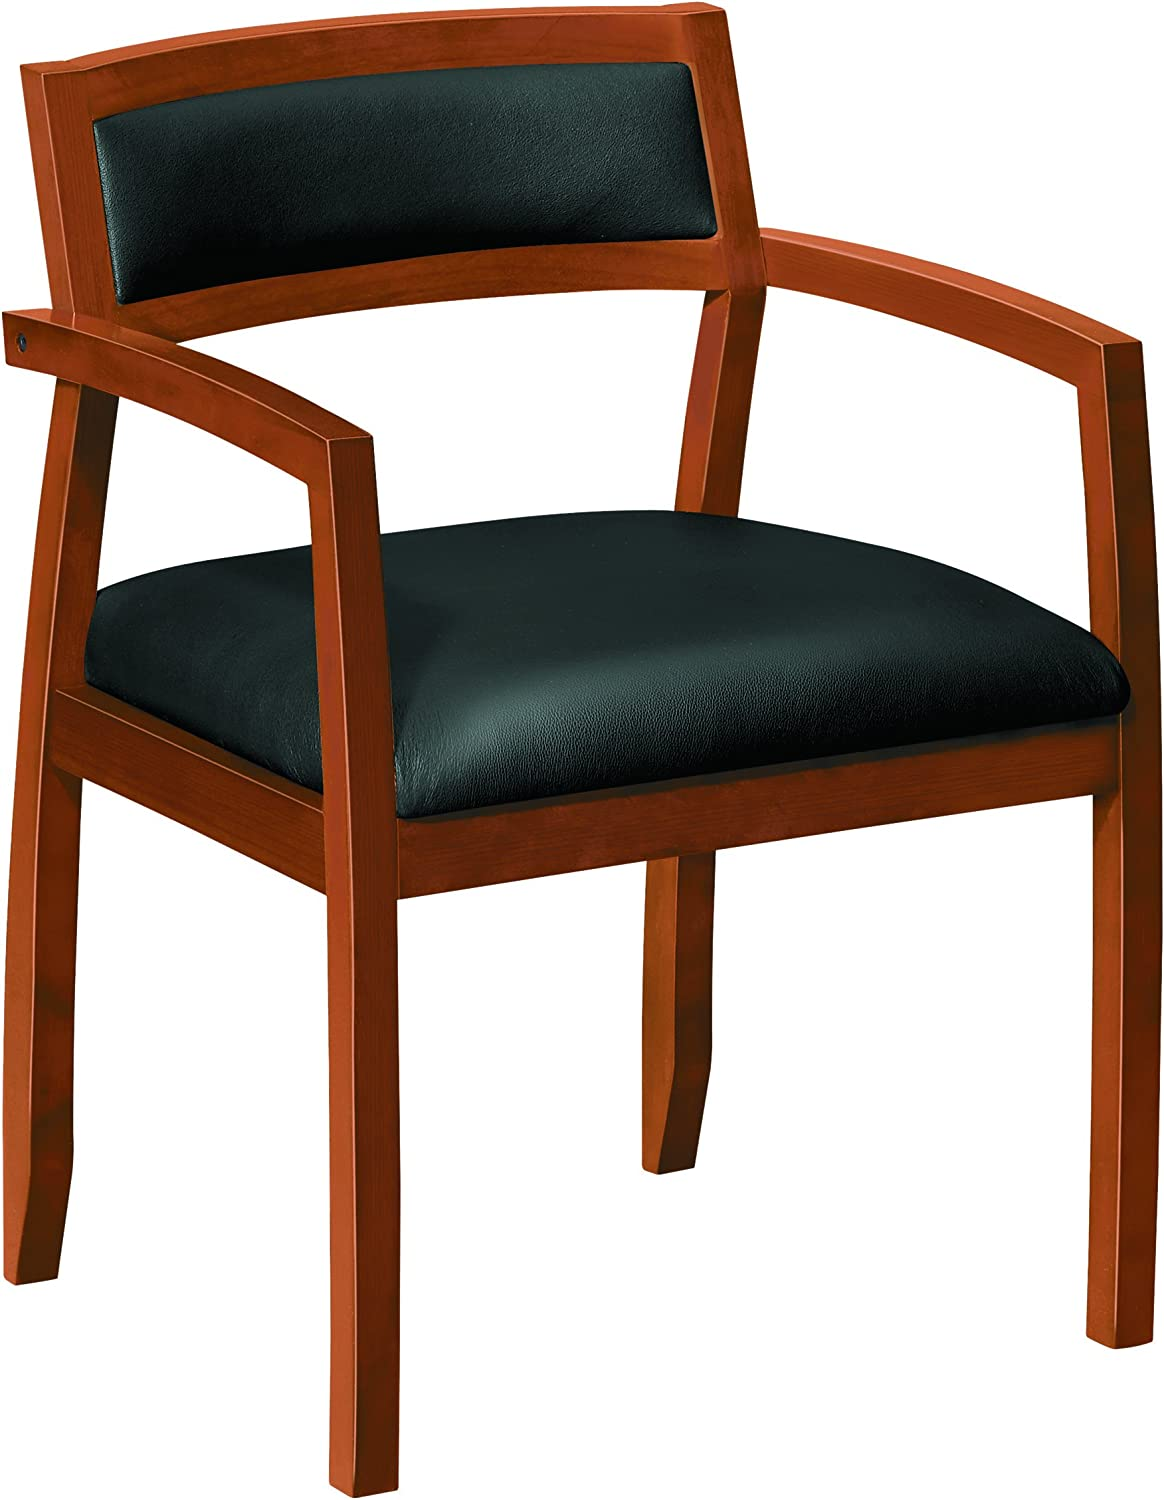 HON Topflight Wood Guest Chair - Leather Seated Guest Chair with Arms, Office Furniture, Bourbon Cherry Finish (VL852)